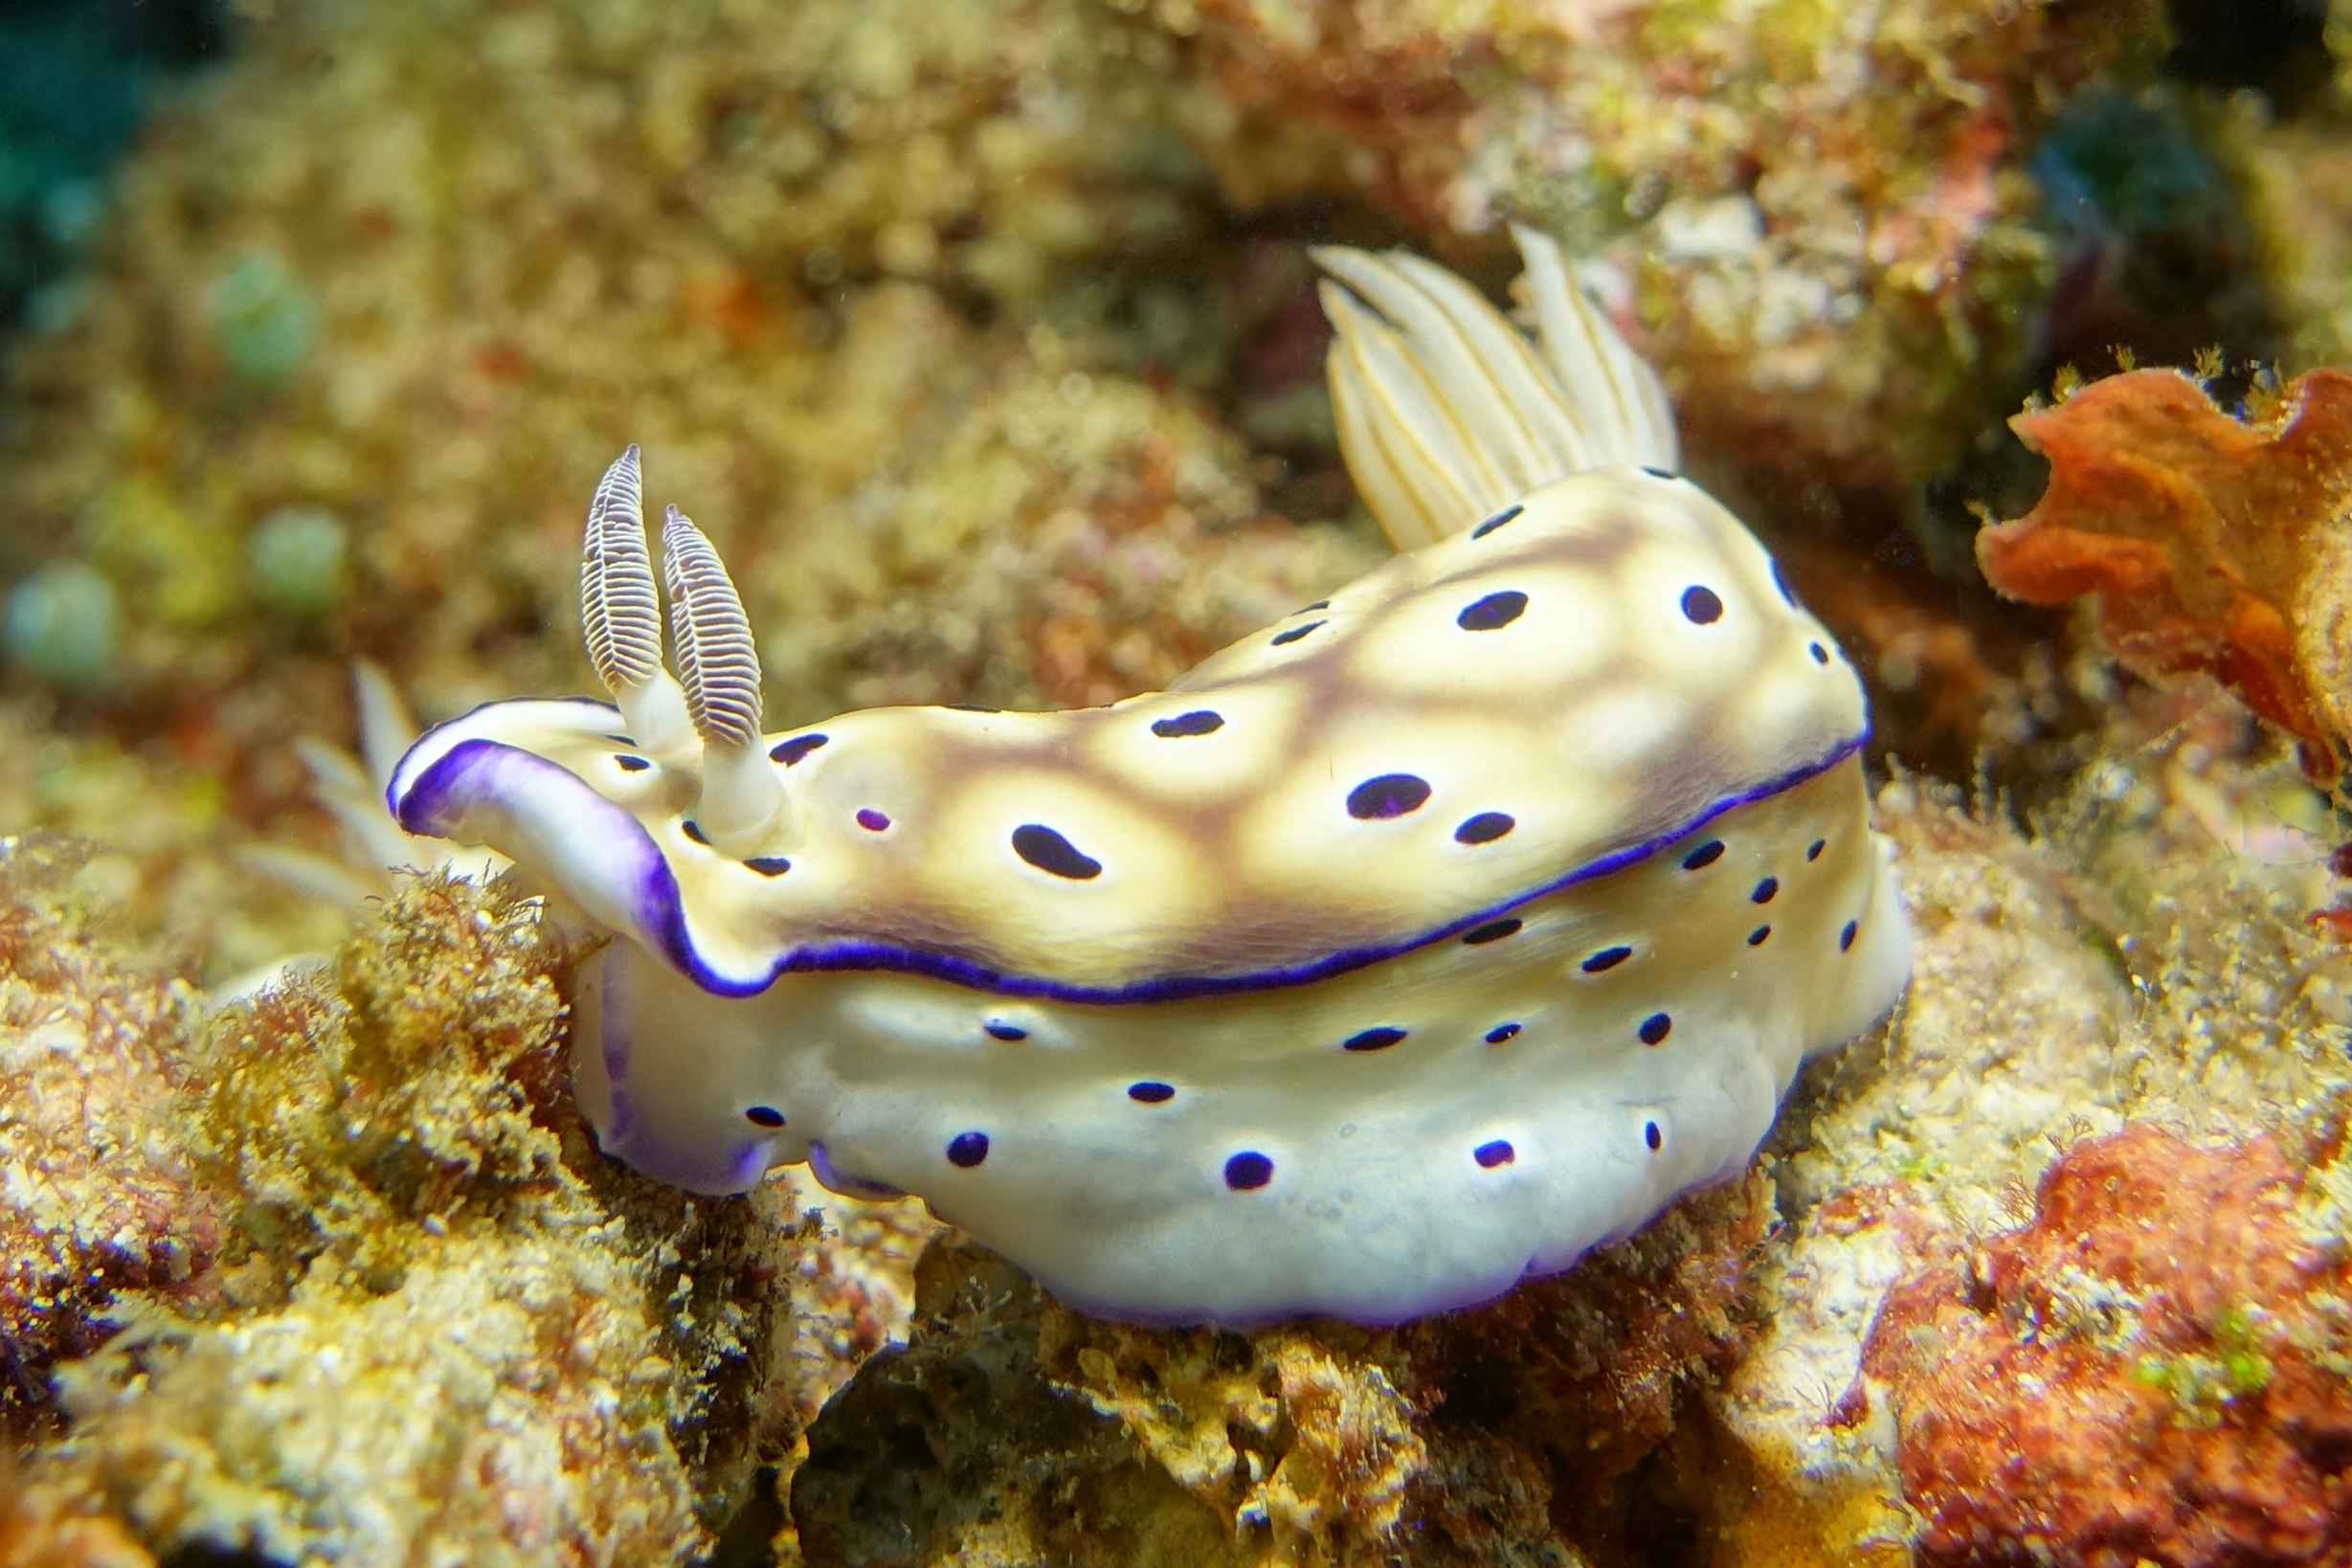 nudibranch 2297.jpg